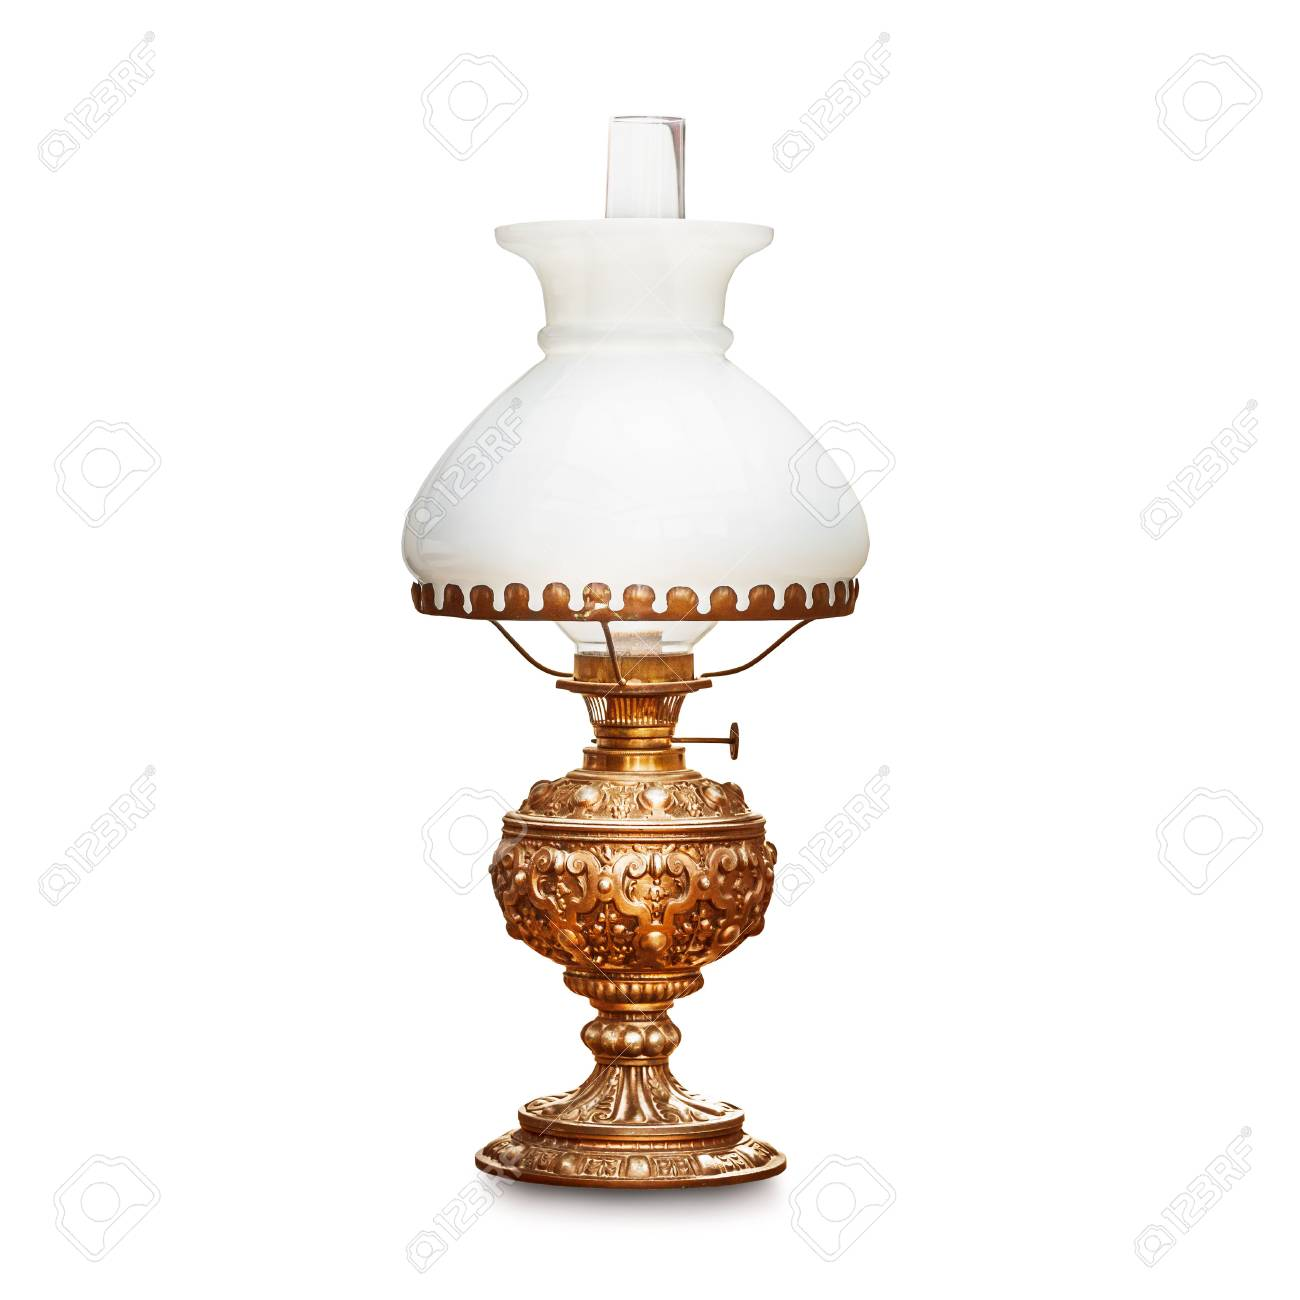 Vintage Table Lamp With White Lampshade Isolated On White Background Stock Photo Picture And Royalty Free Image Image 92921151